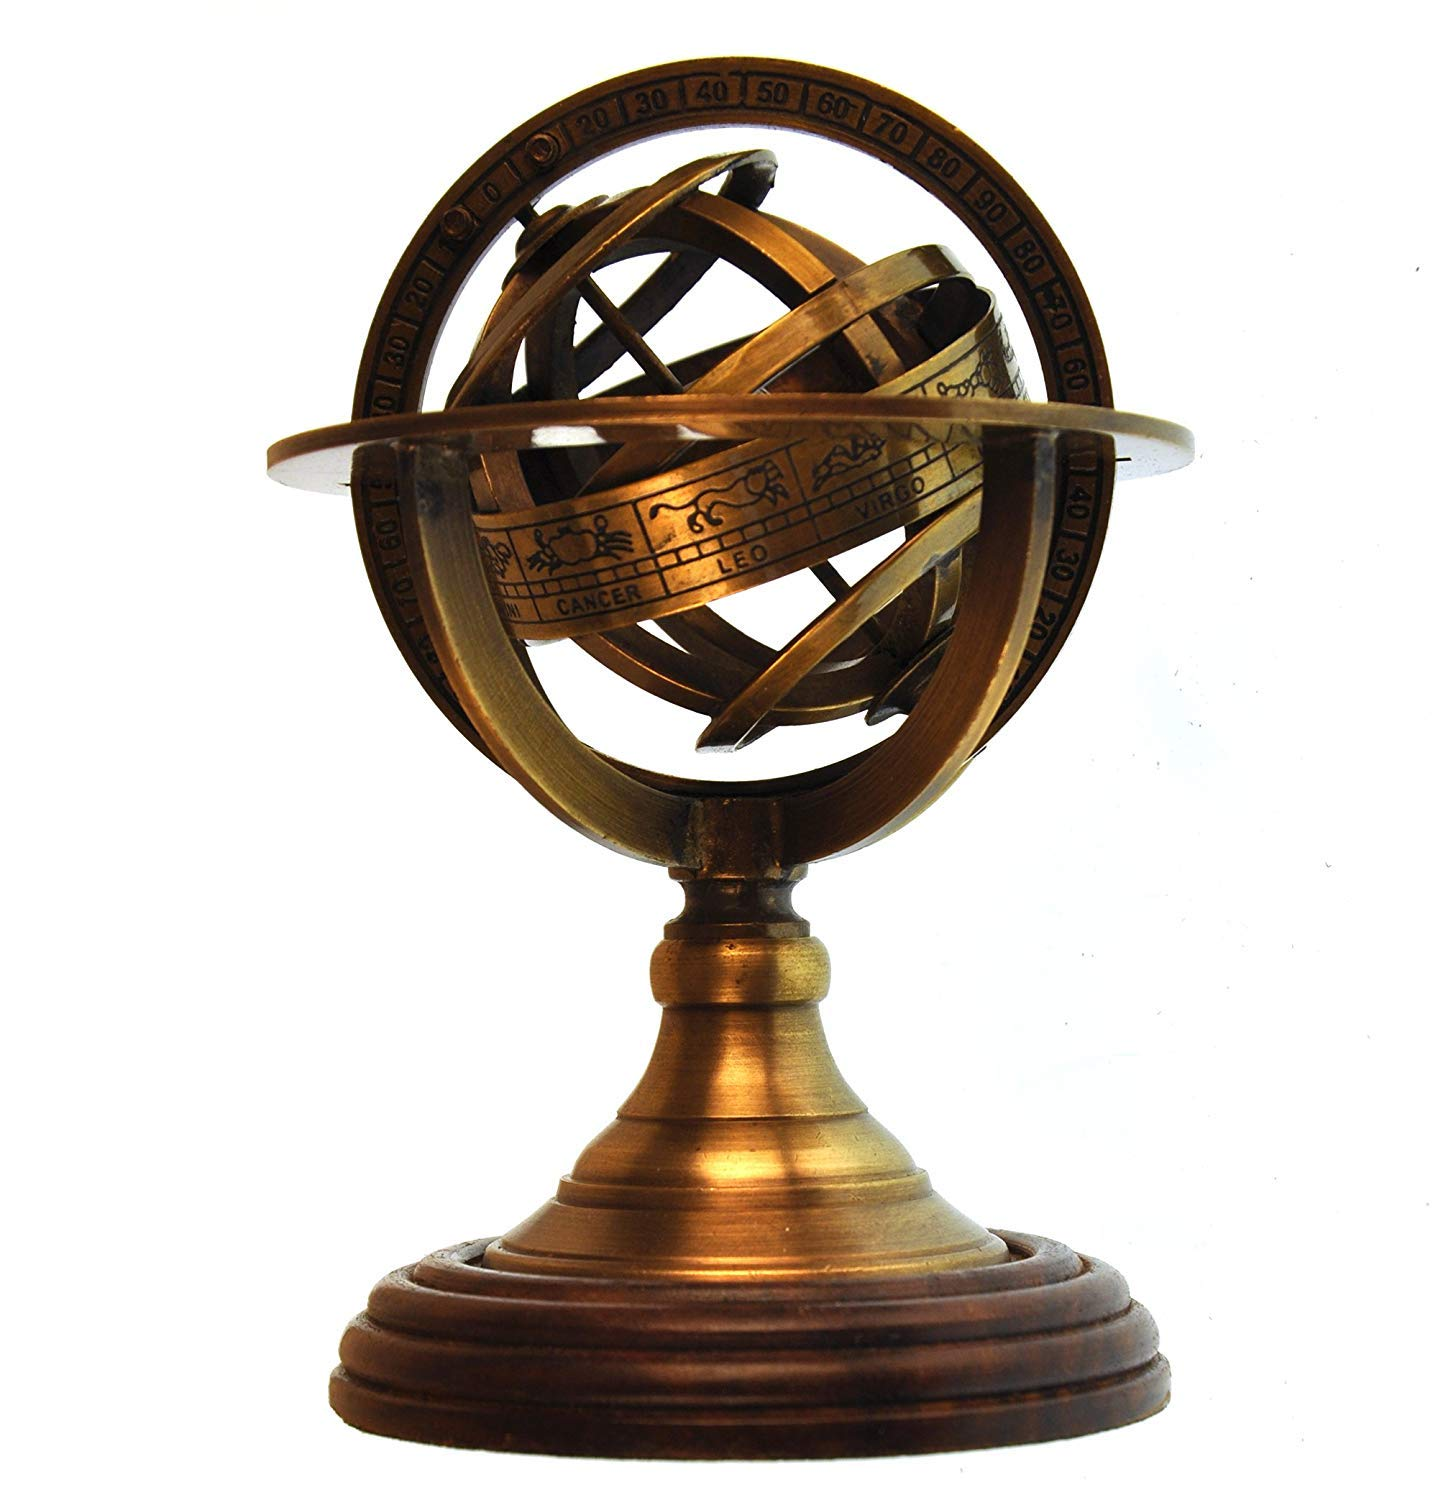 Paperweight Armillary Sphere Astrology Globe Scaled Replica Antique Scientific Instrument